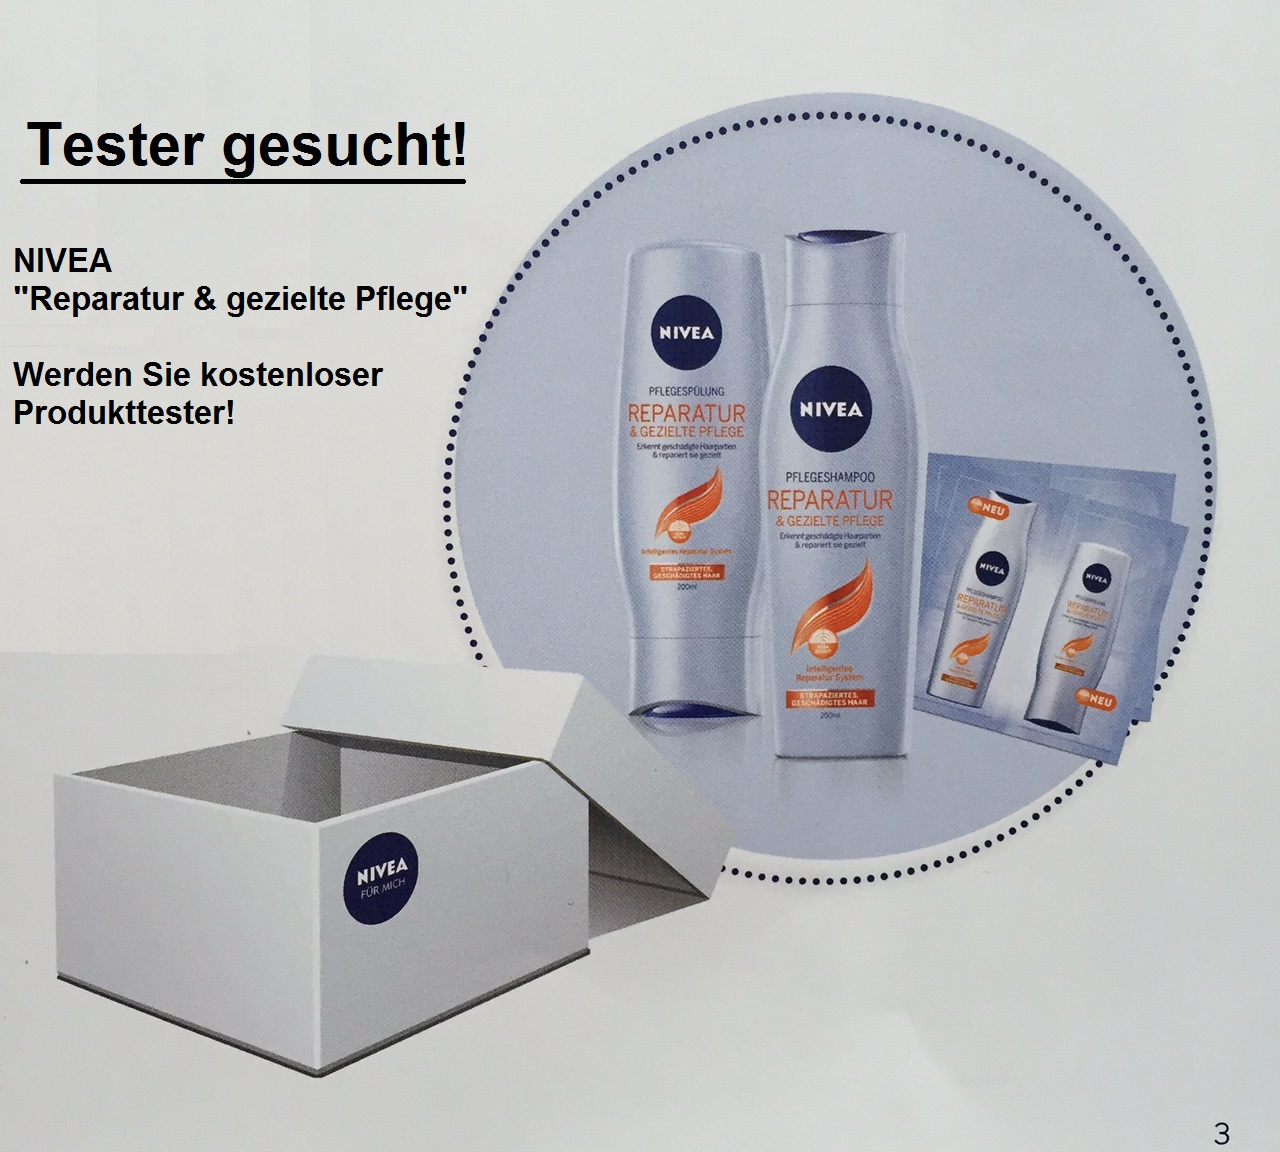 nivea botschafter aktion mittester gesucht. Black Bedroom Furniture Sets. Home Design Ideas